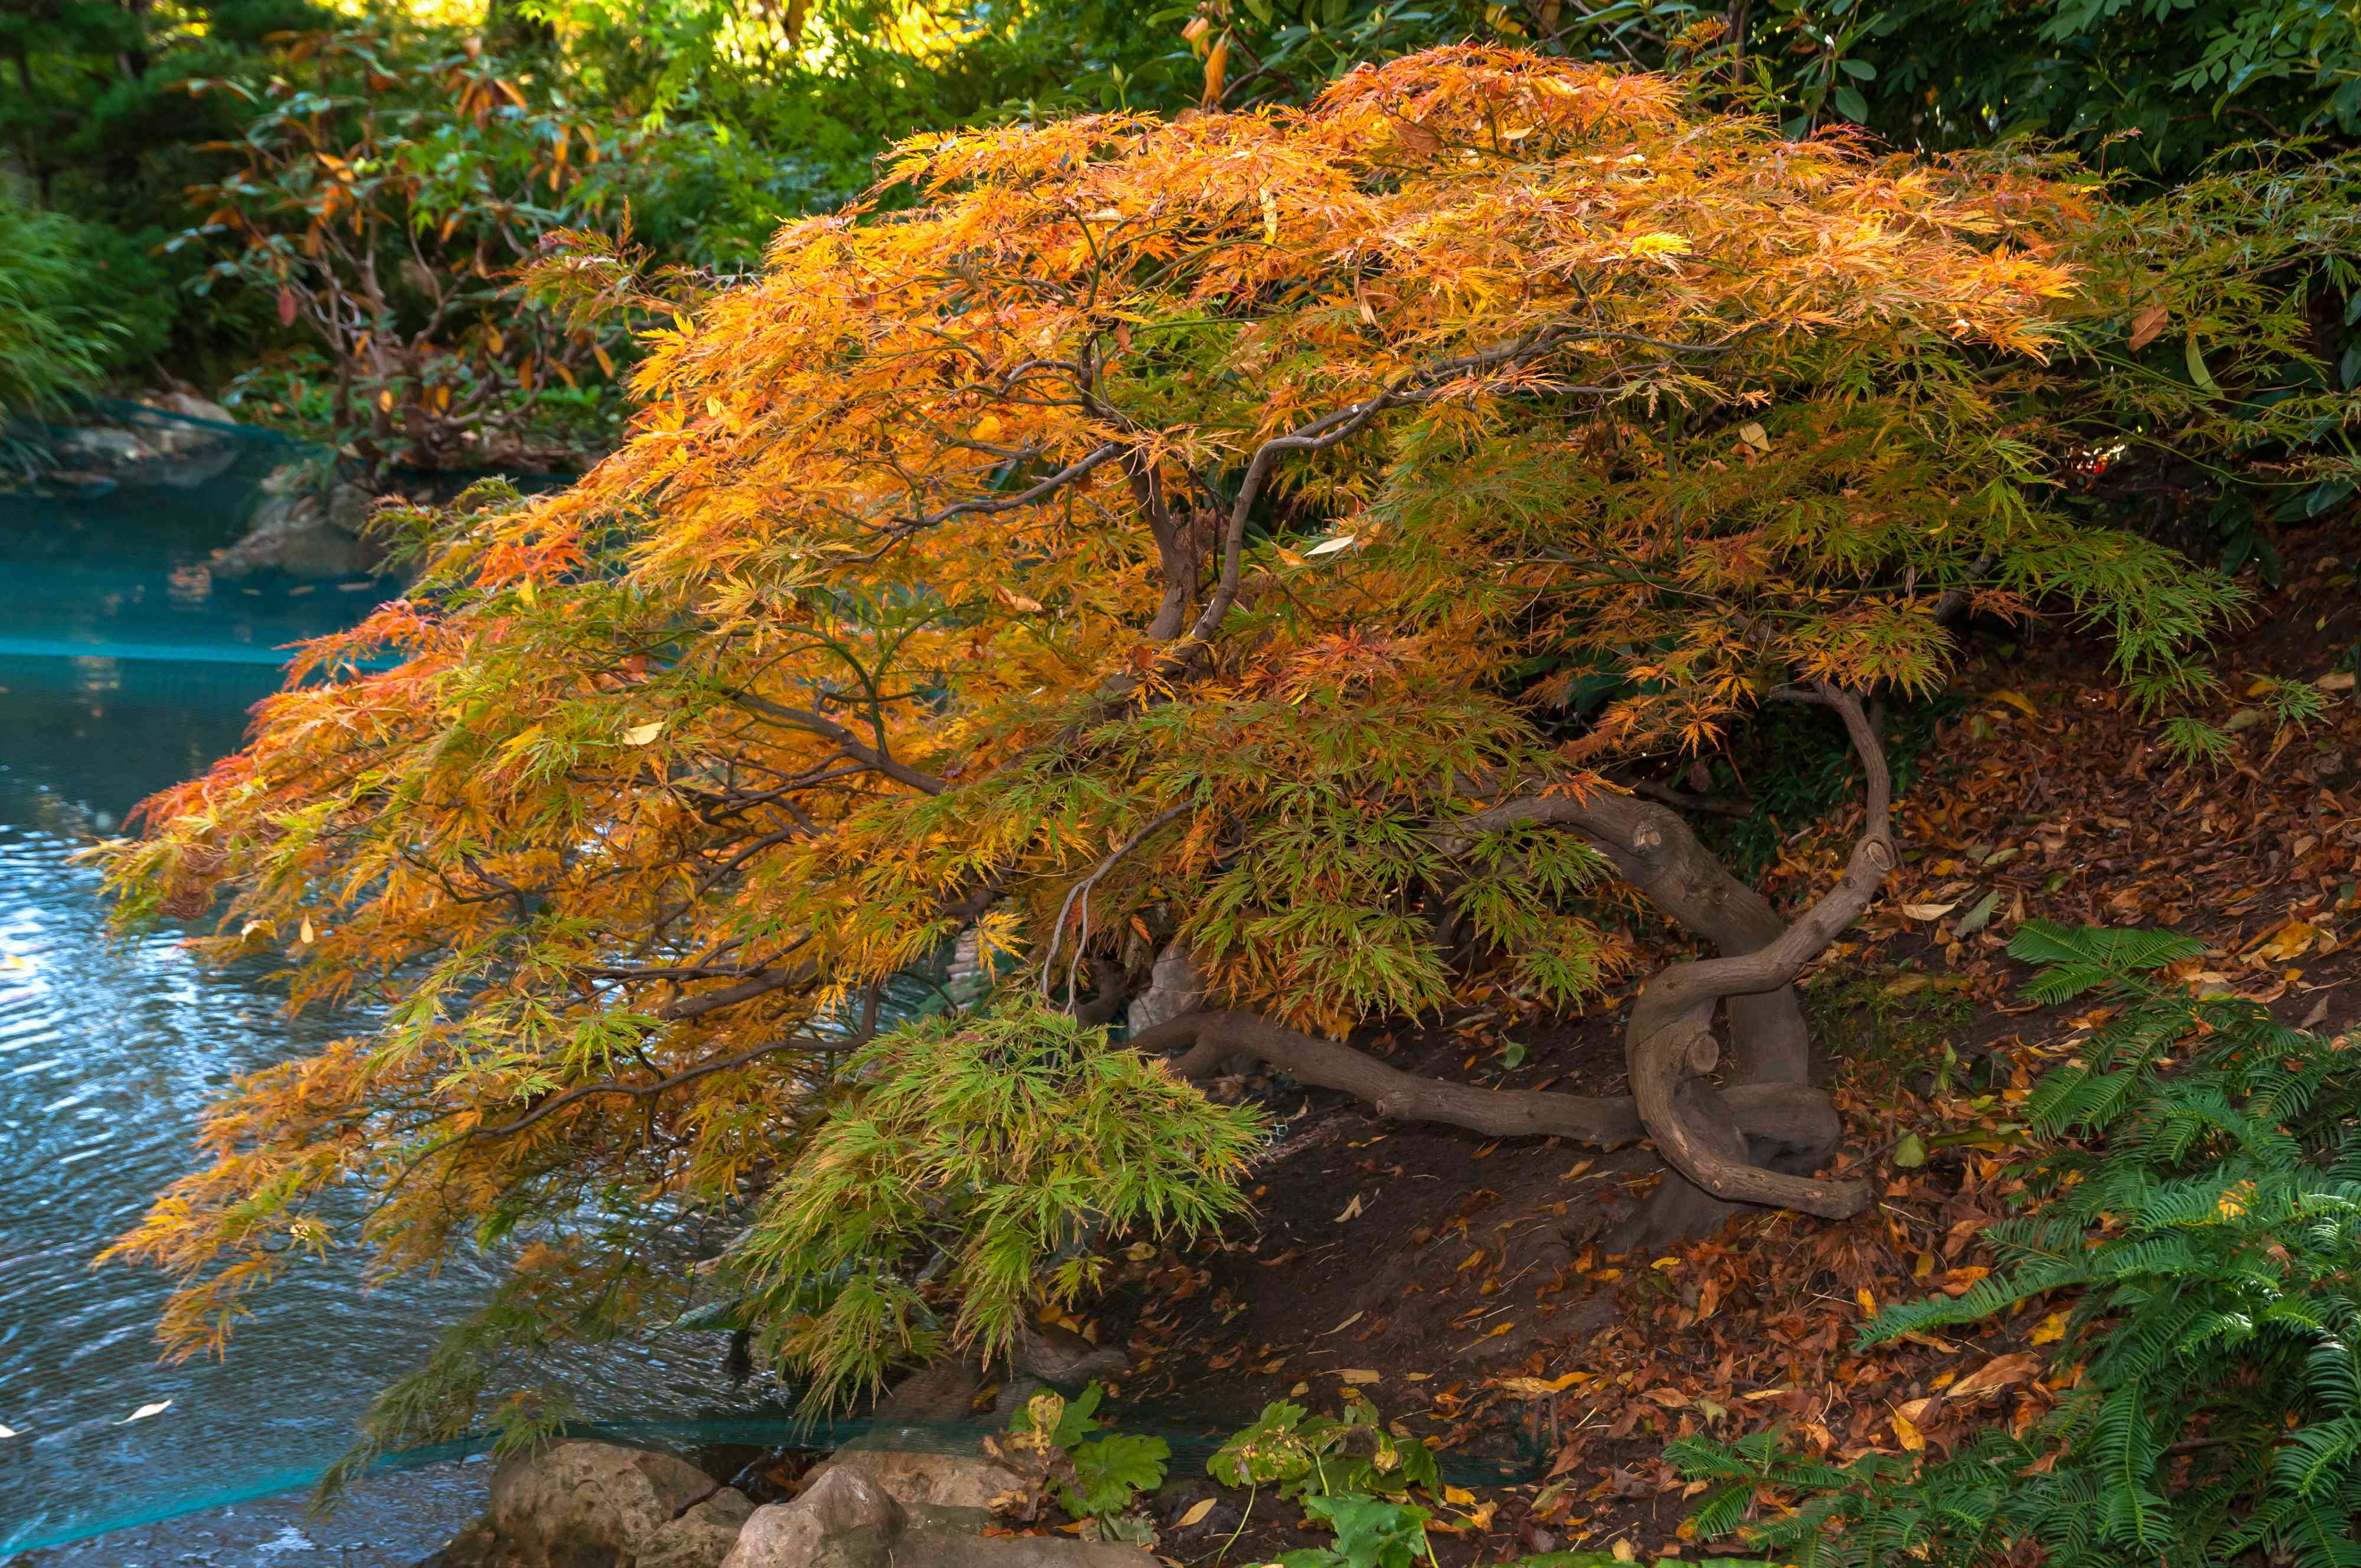 Japanese maple dwarf tree with bright orange leaves and a twisted trunk near a pond